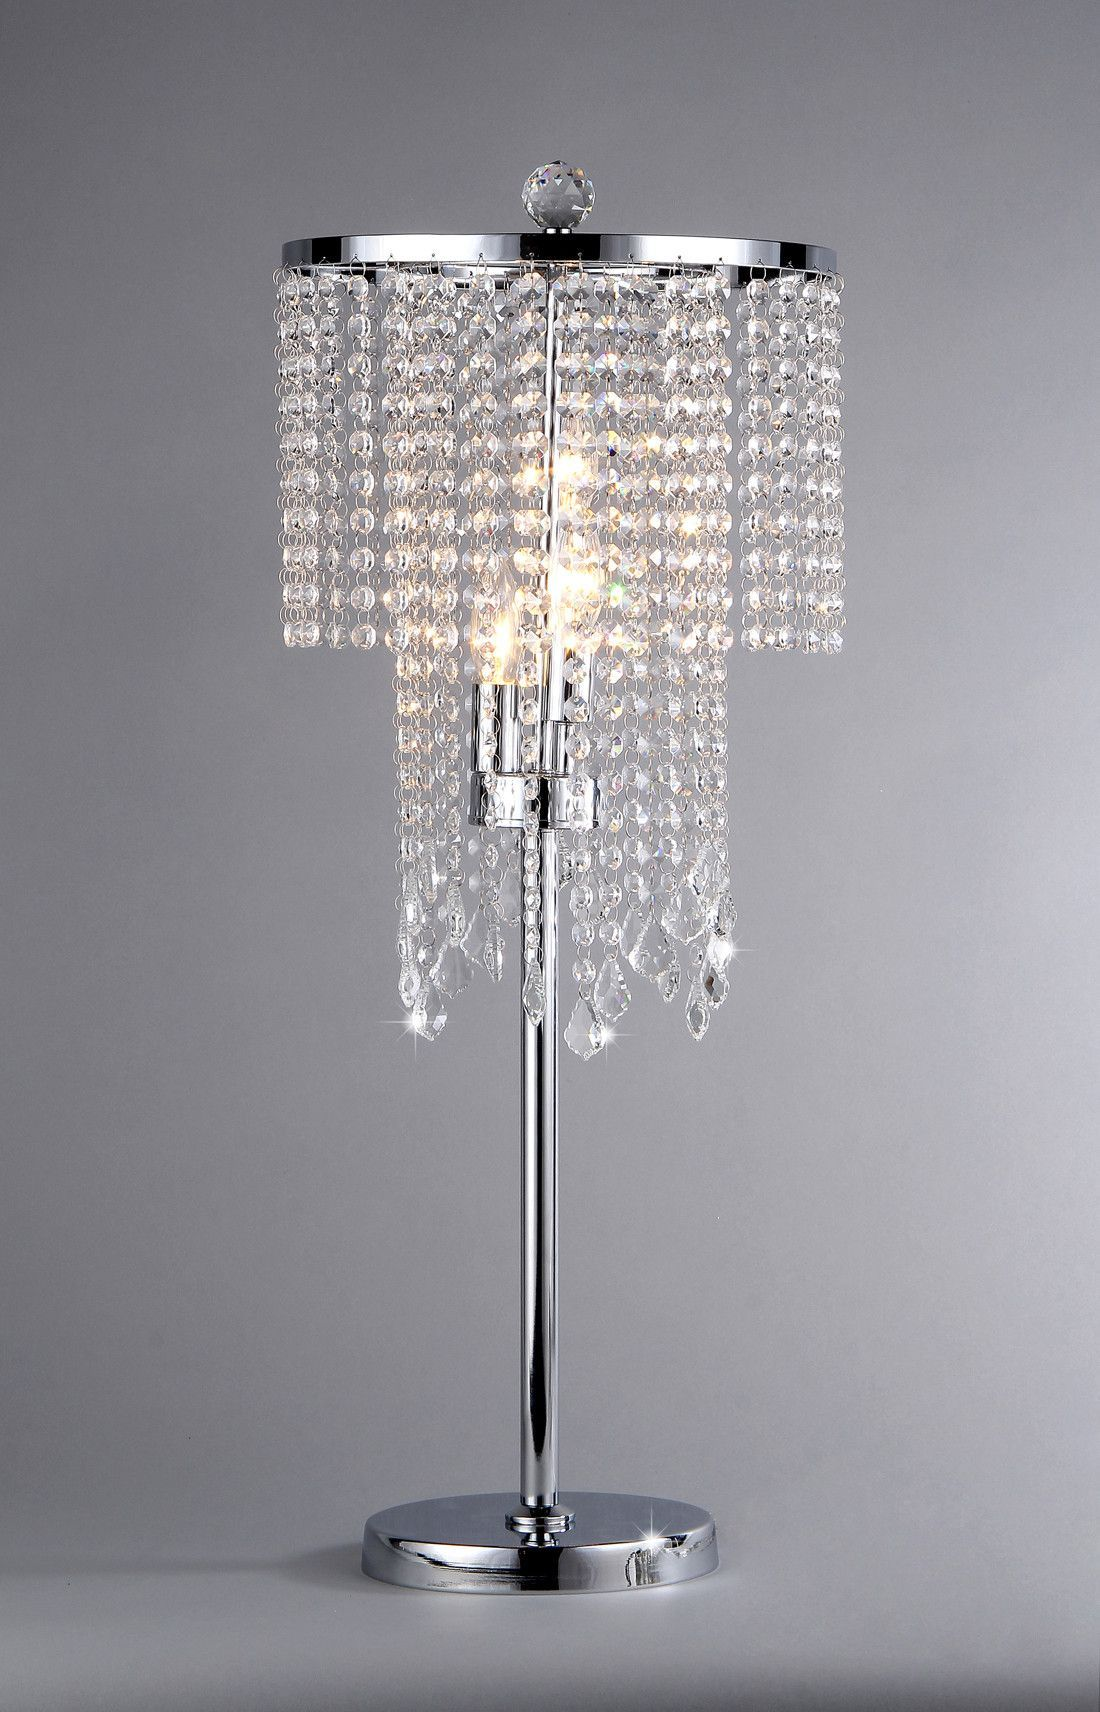 32 Contemporary Silver Crystal Bead Chandelier Looktable Lamp